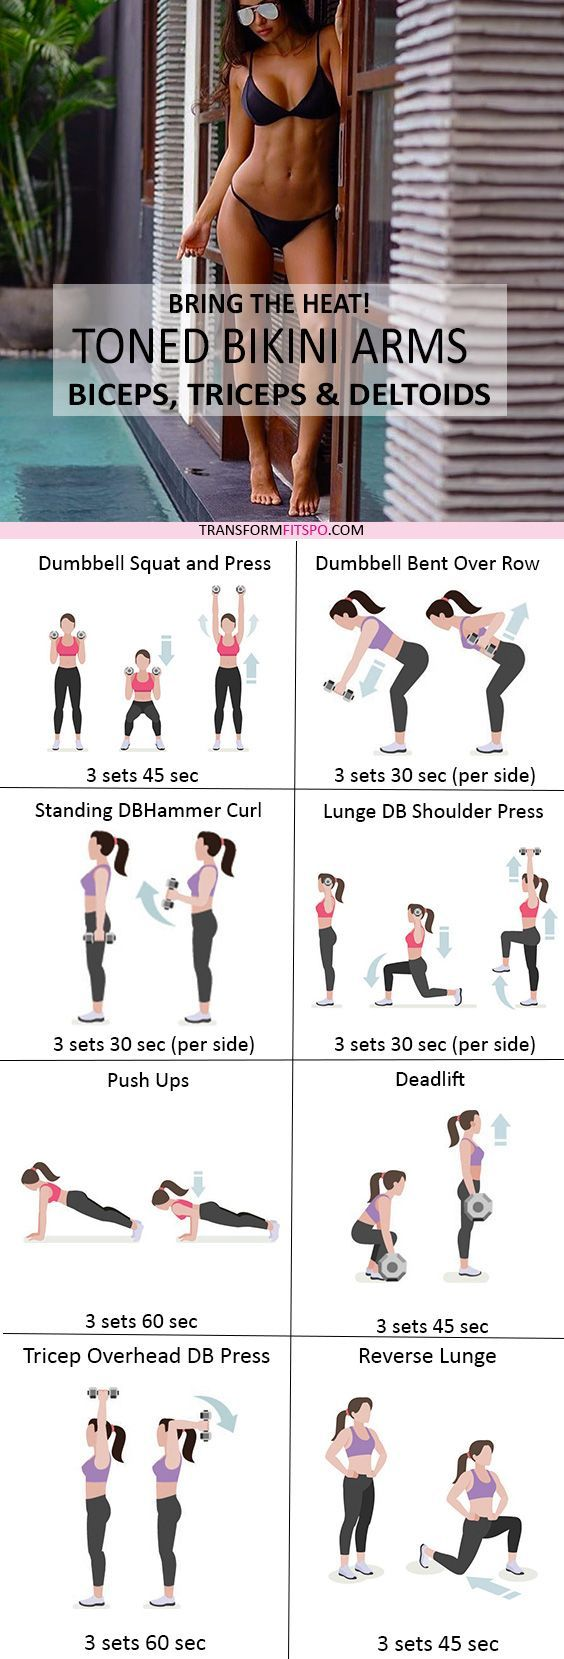 ? Bring the HEAT! Sexy, Toned Bikini Arms - Rapid Results Workout for Women! - Transform Fitspo #dumbbellexercises